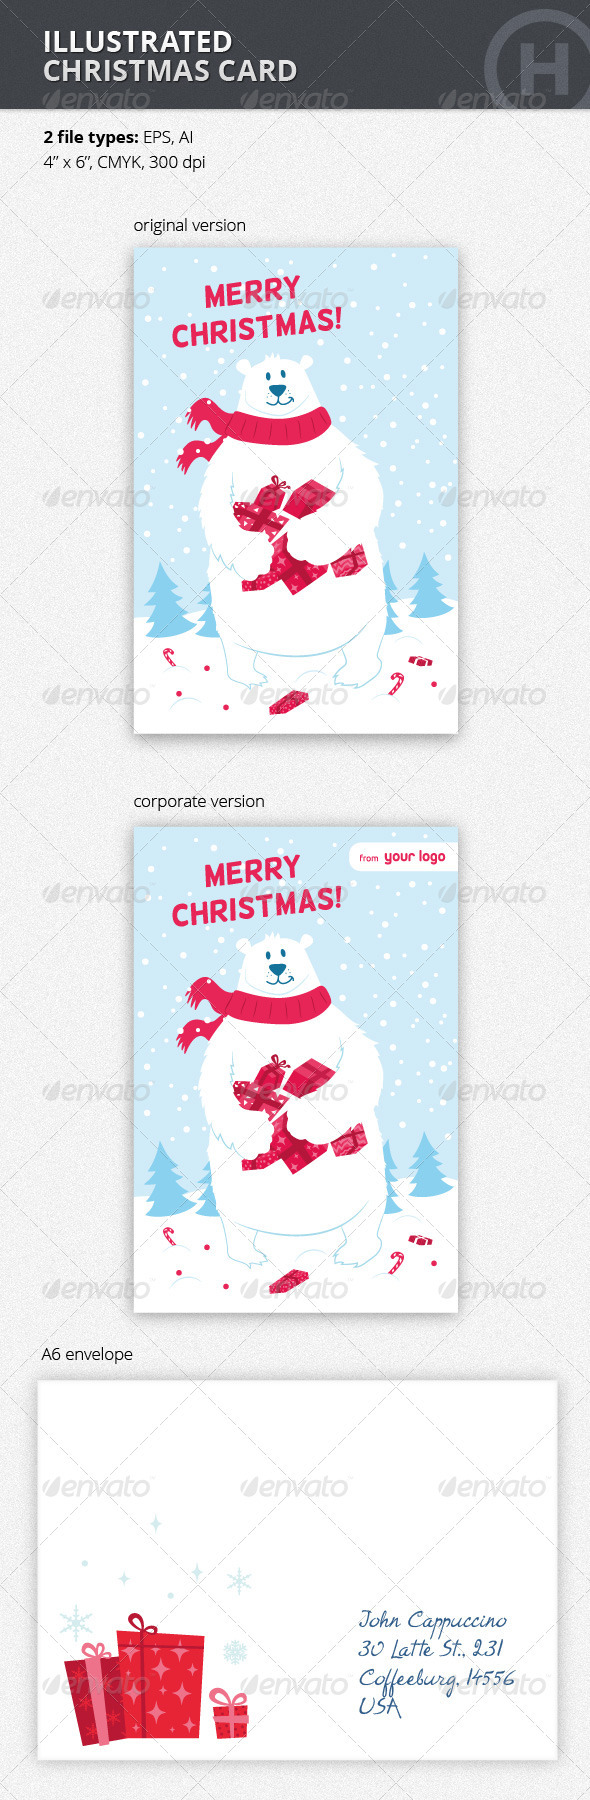 Illustrated Christmas Card with Polar Bear - Holiday Greeting Cards